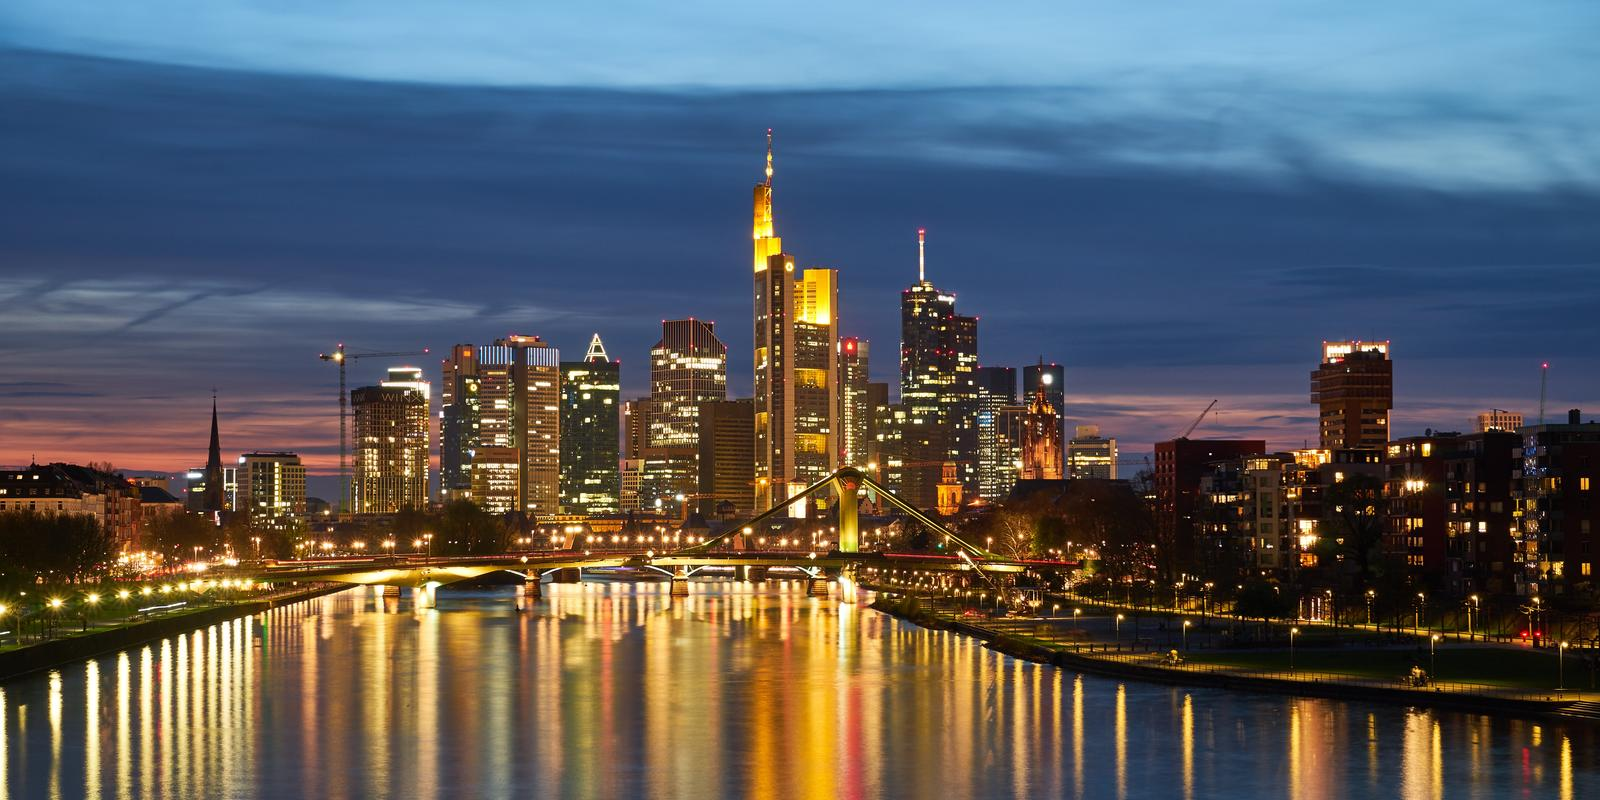 Aerial view of Frankfurt skyline